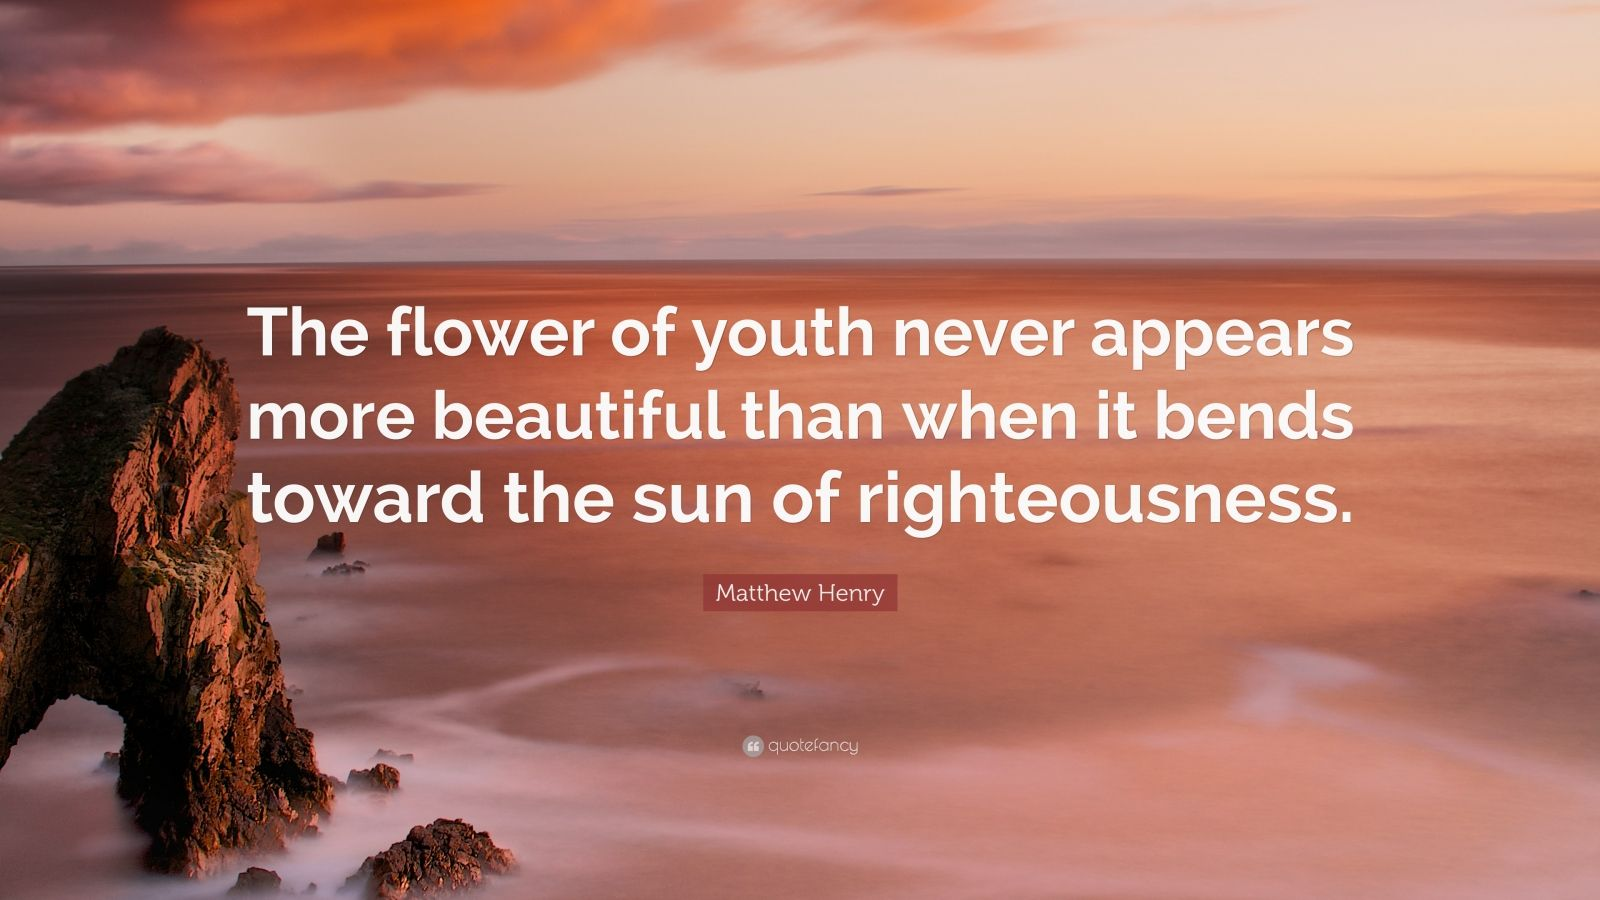 """Matthew Henry Quote: """"The flower of youth never appears more beautiful than when it bends toward the sun of righteousness."""""""